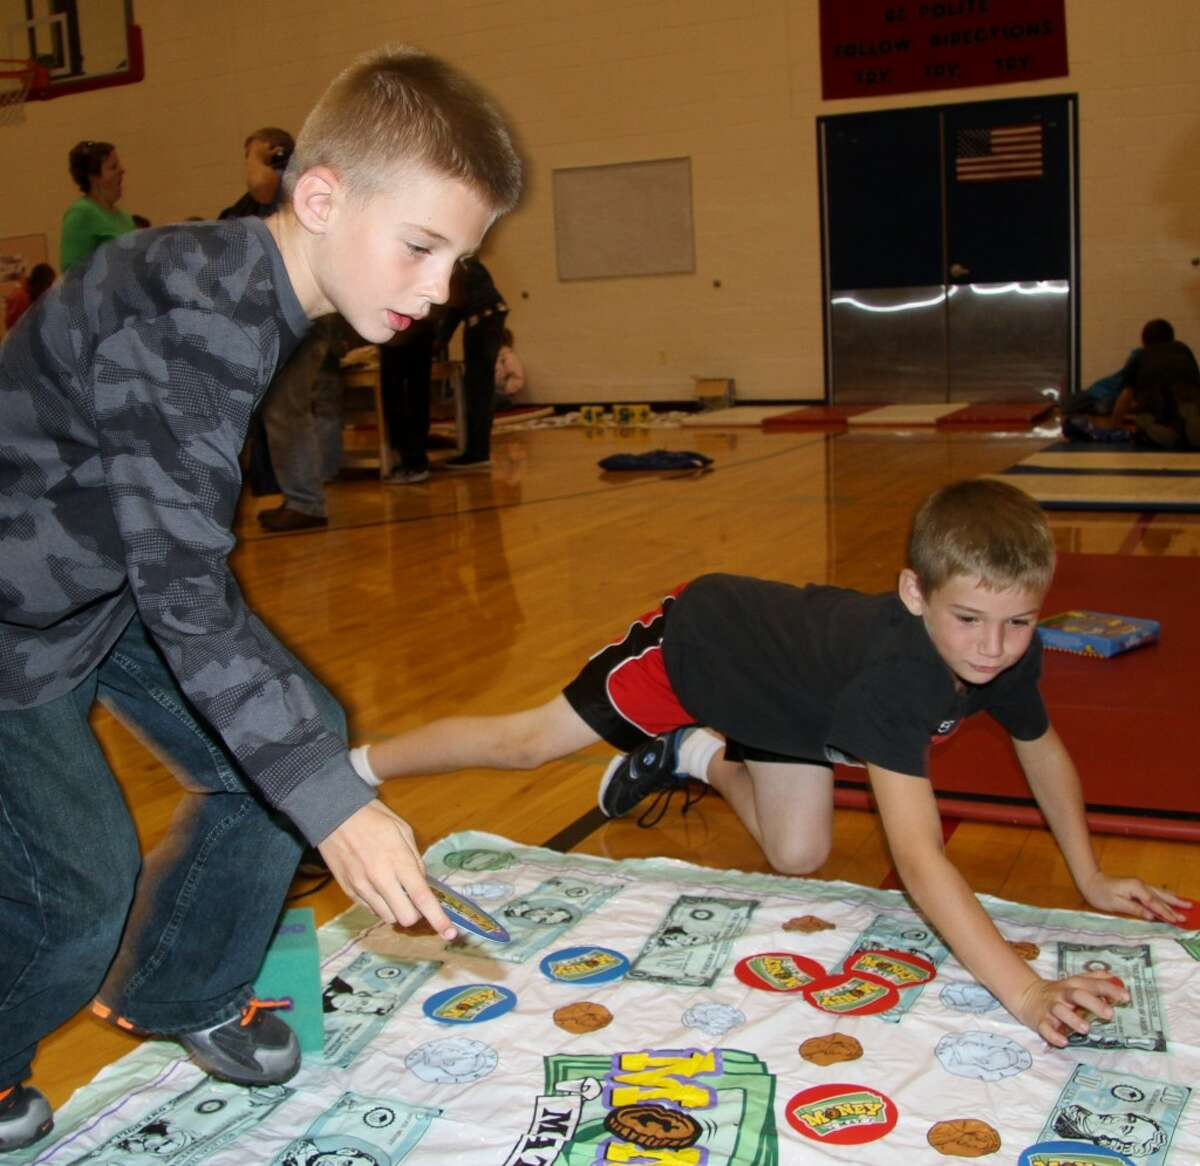 MATH GAMES: Second graders Ty Kailing (left) and Teddy Szymanski play a game where they had to cover different amounts of money shown on dice.